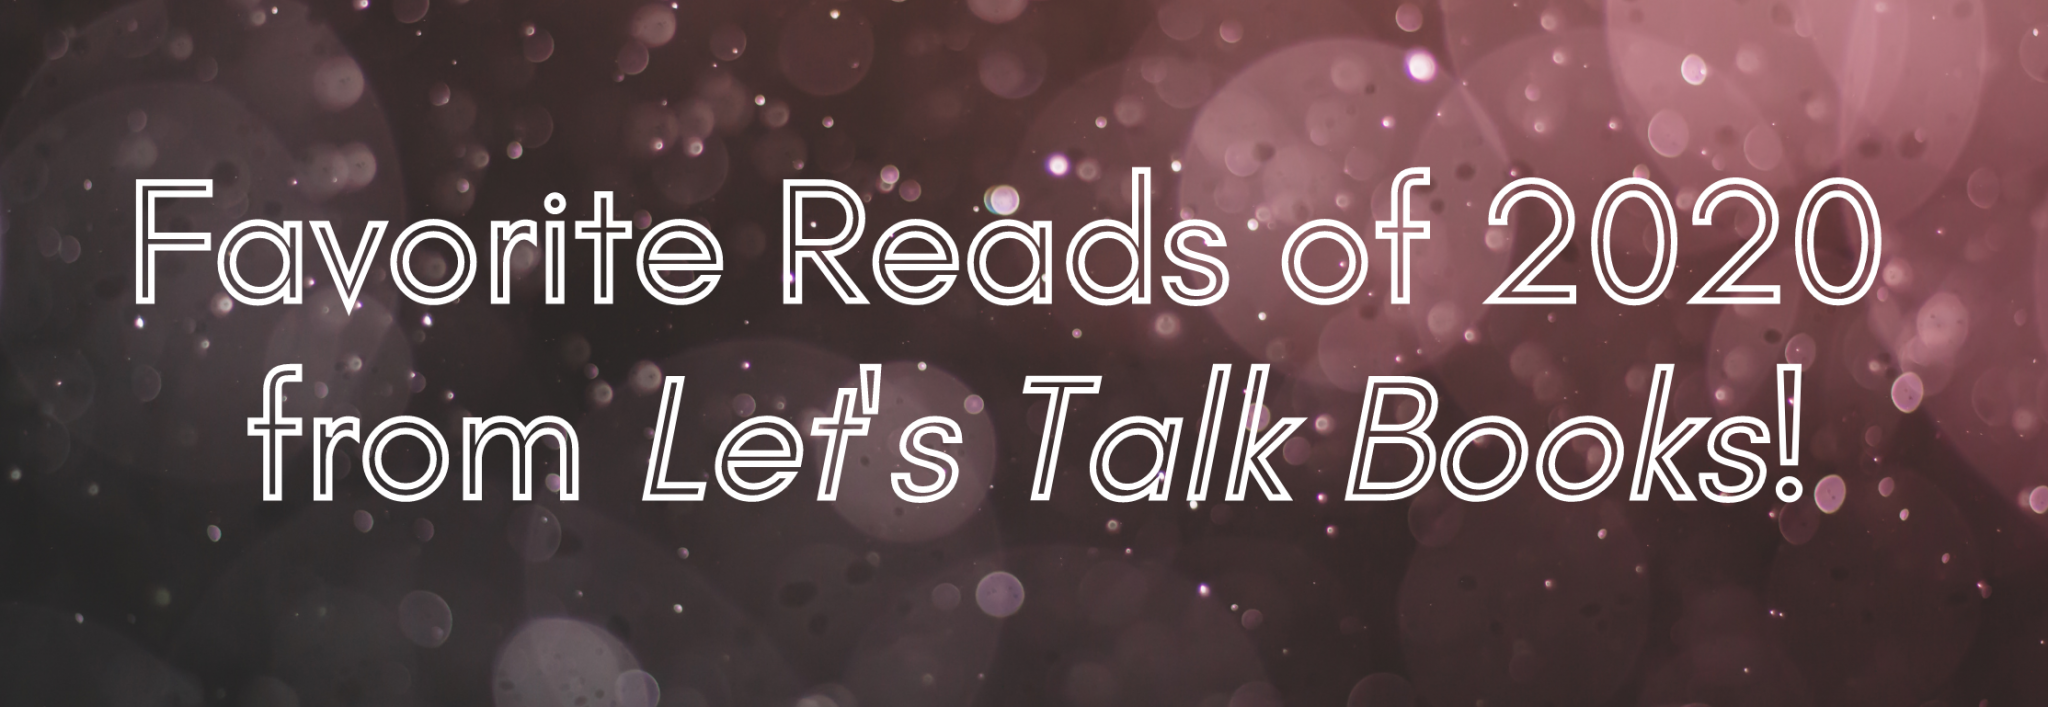 Favorite Reads in 2020 from Let's Talk Books